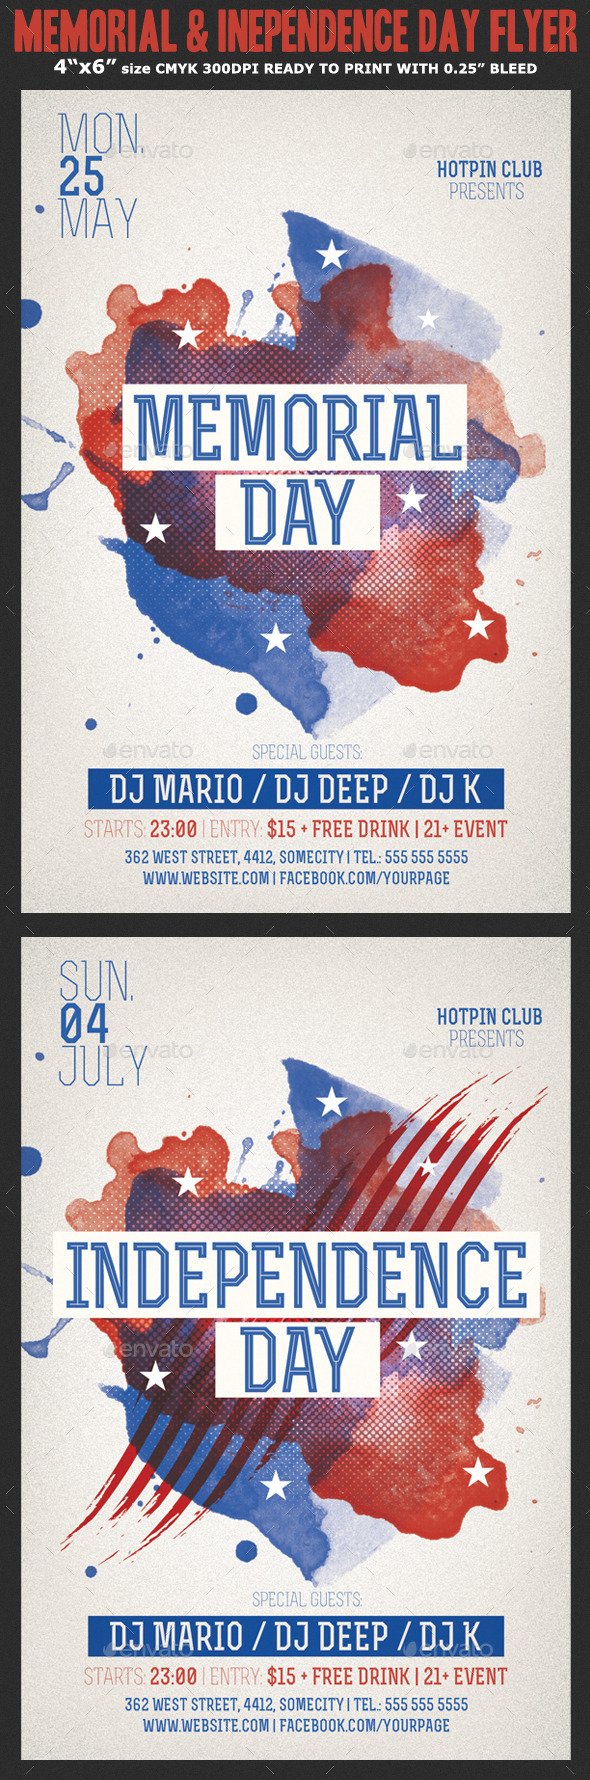 Memorial/Independence Day Flyer Template